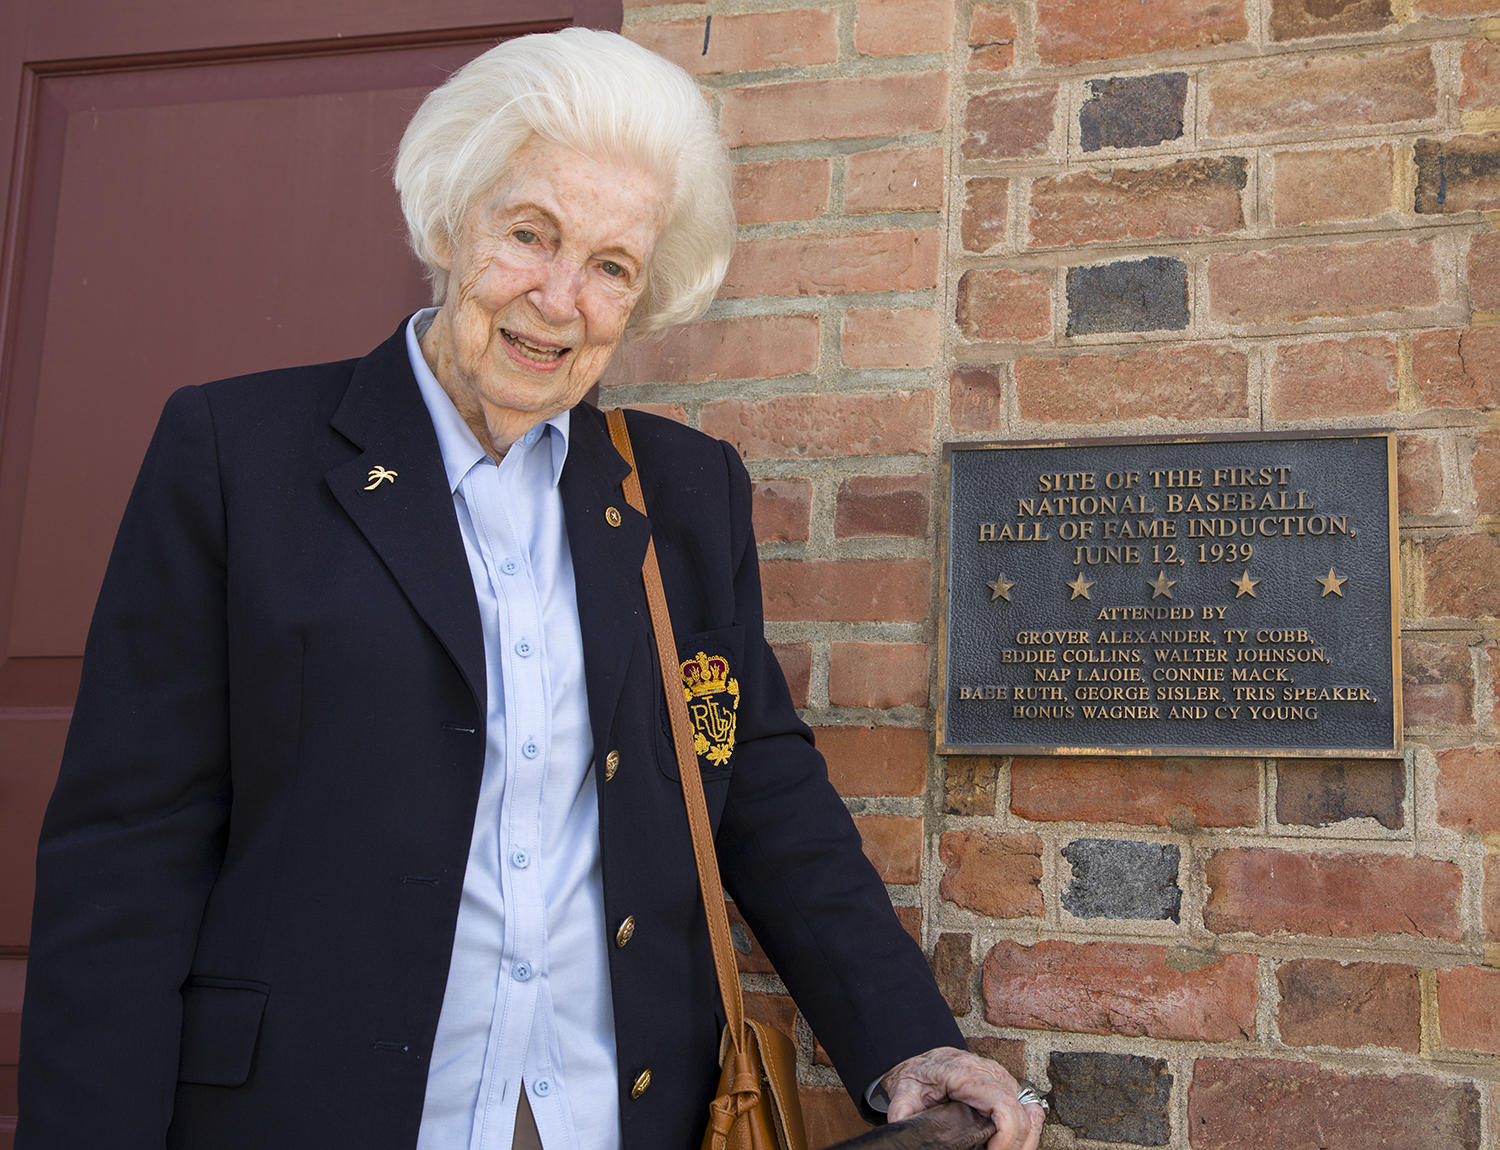 Betty Roxborough poses next to a plaque commemorating the first Hall of Fame Induction on June 12, 1939. (Milo Stewart Jr. / National Baseball Hall of Fame and Museum)